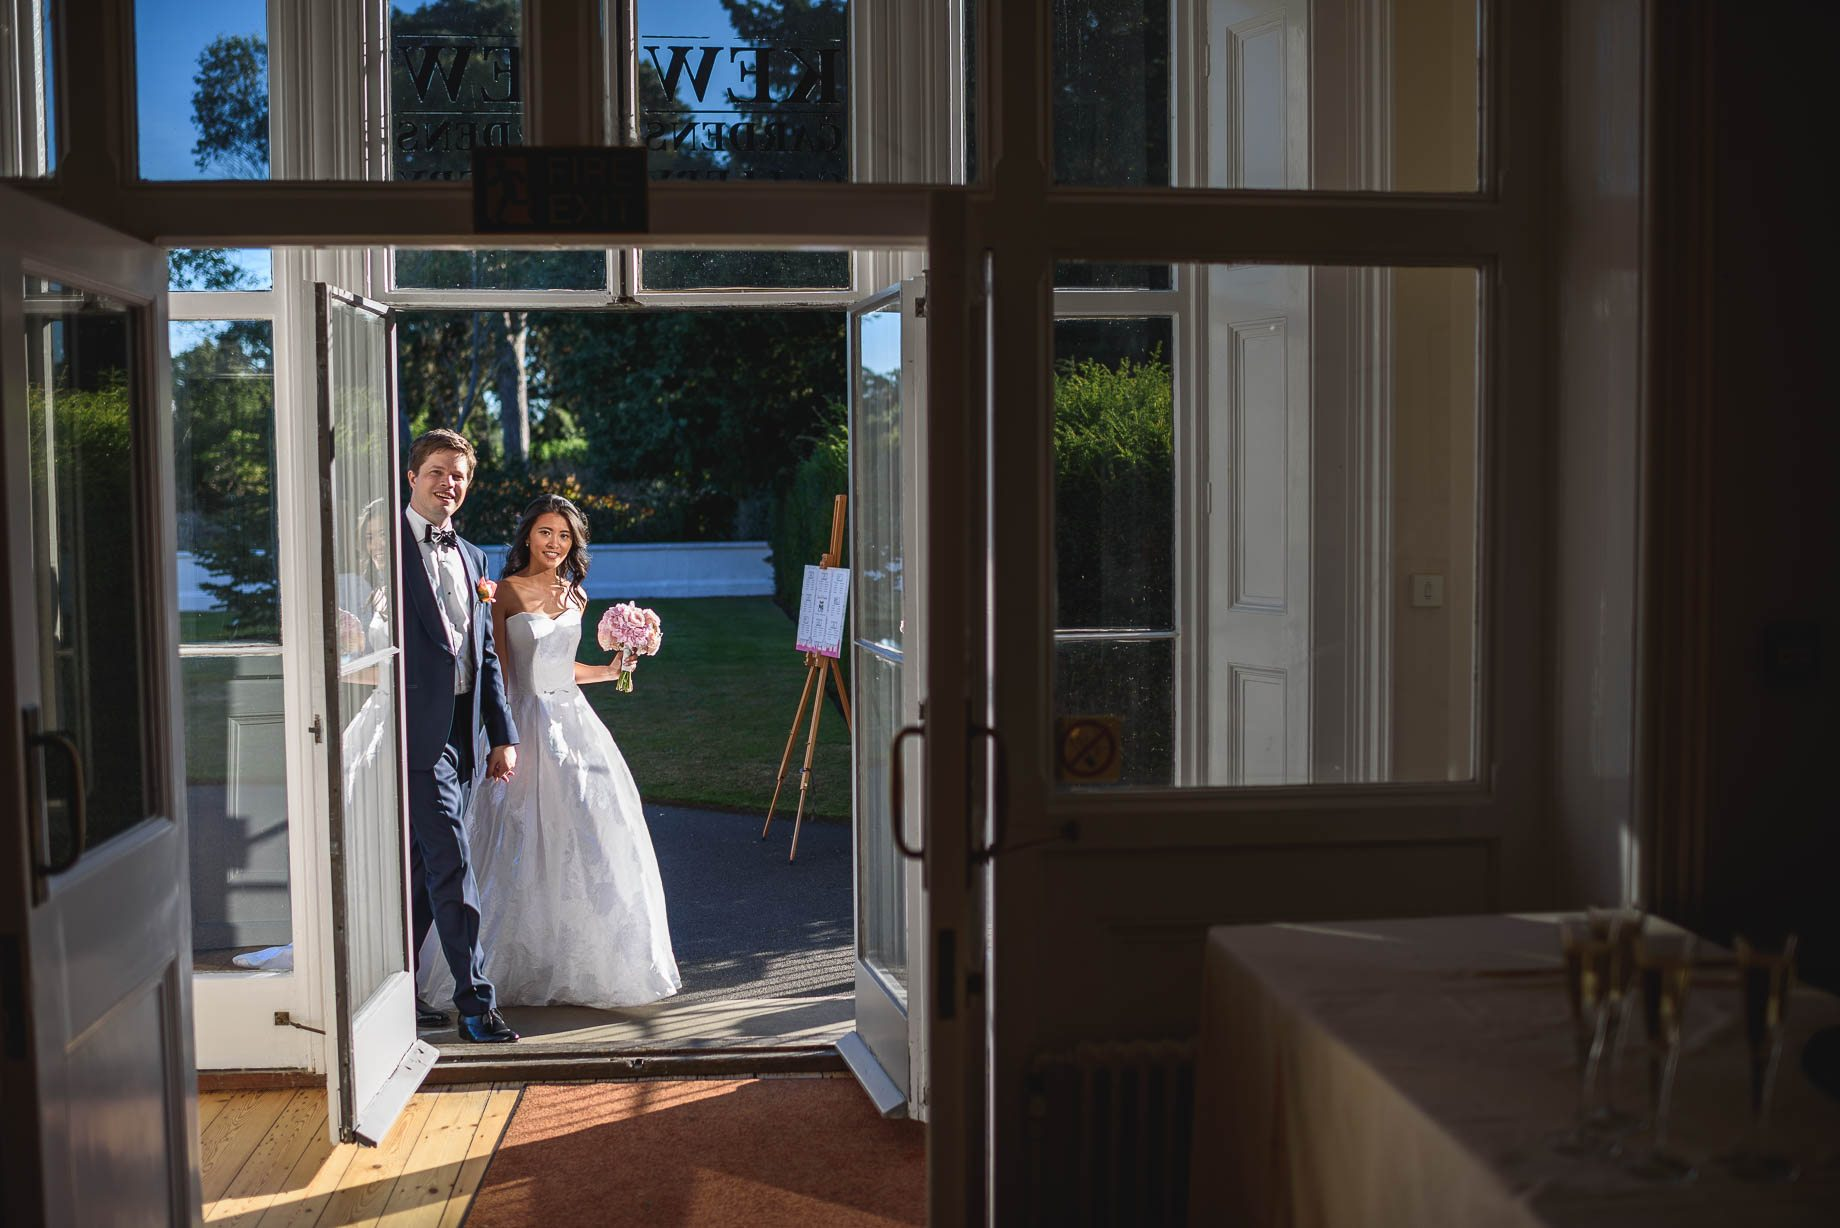 Kew Gardens wedding photography - Guy Collier Photography - Gloria and Frederik (106 of 173)